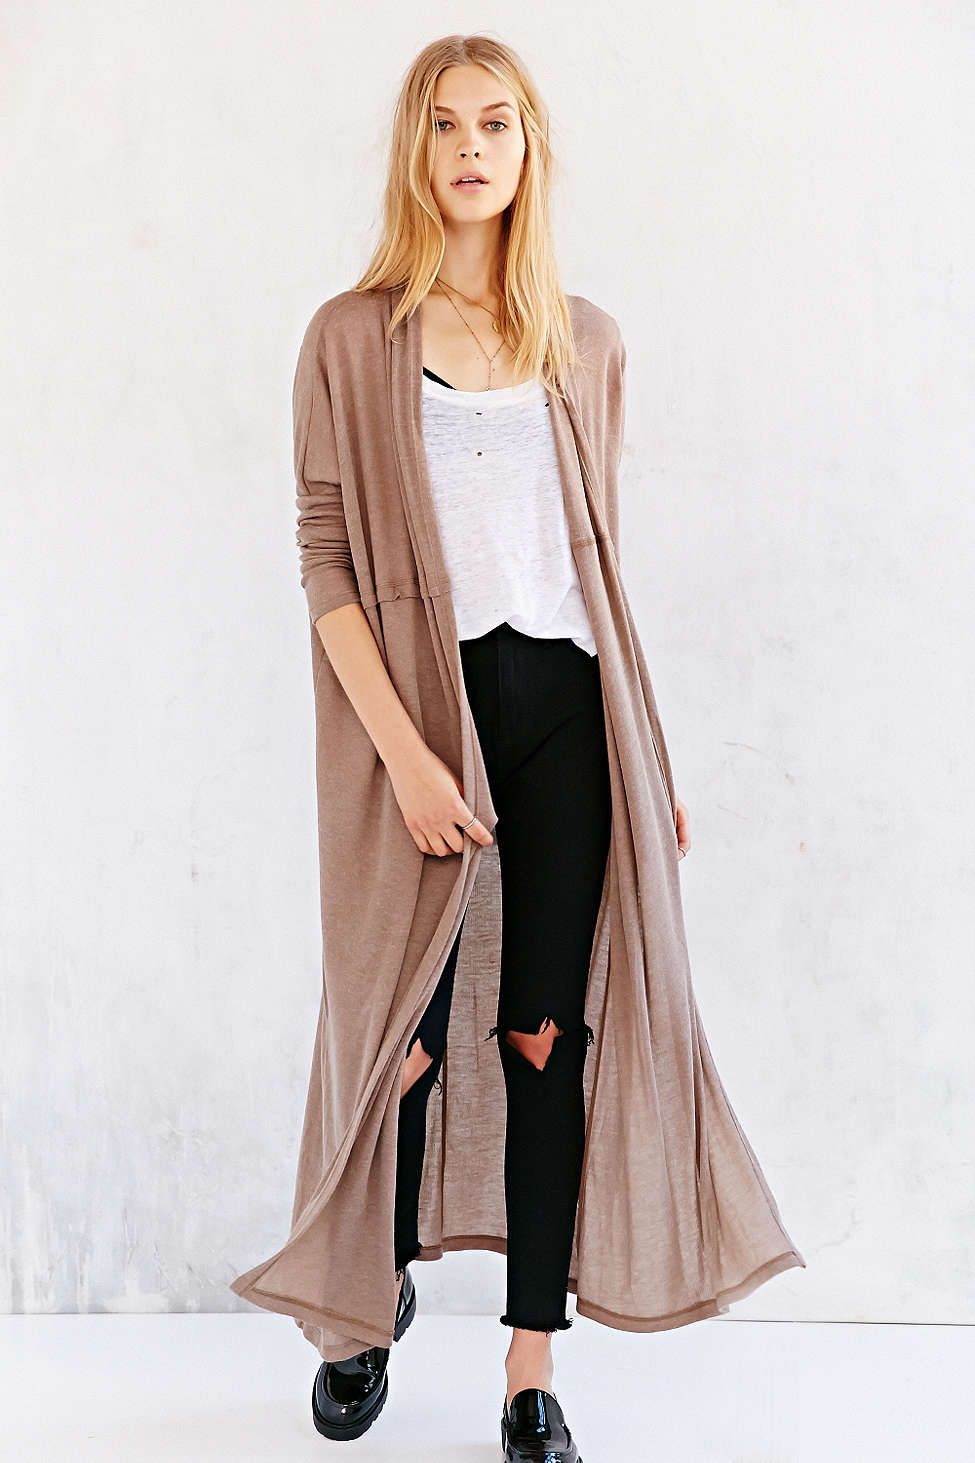 Silence   Noise Layer-It-On Duster Cardigan Sweater - Urban ...